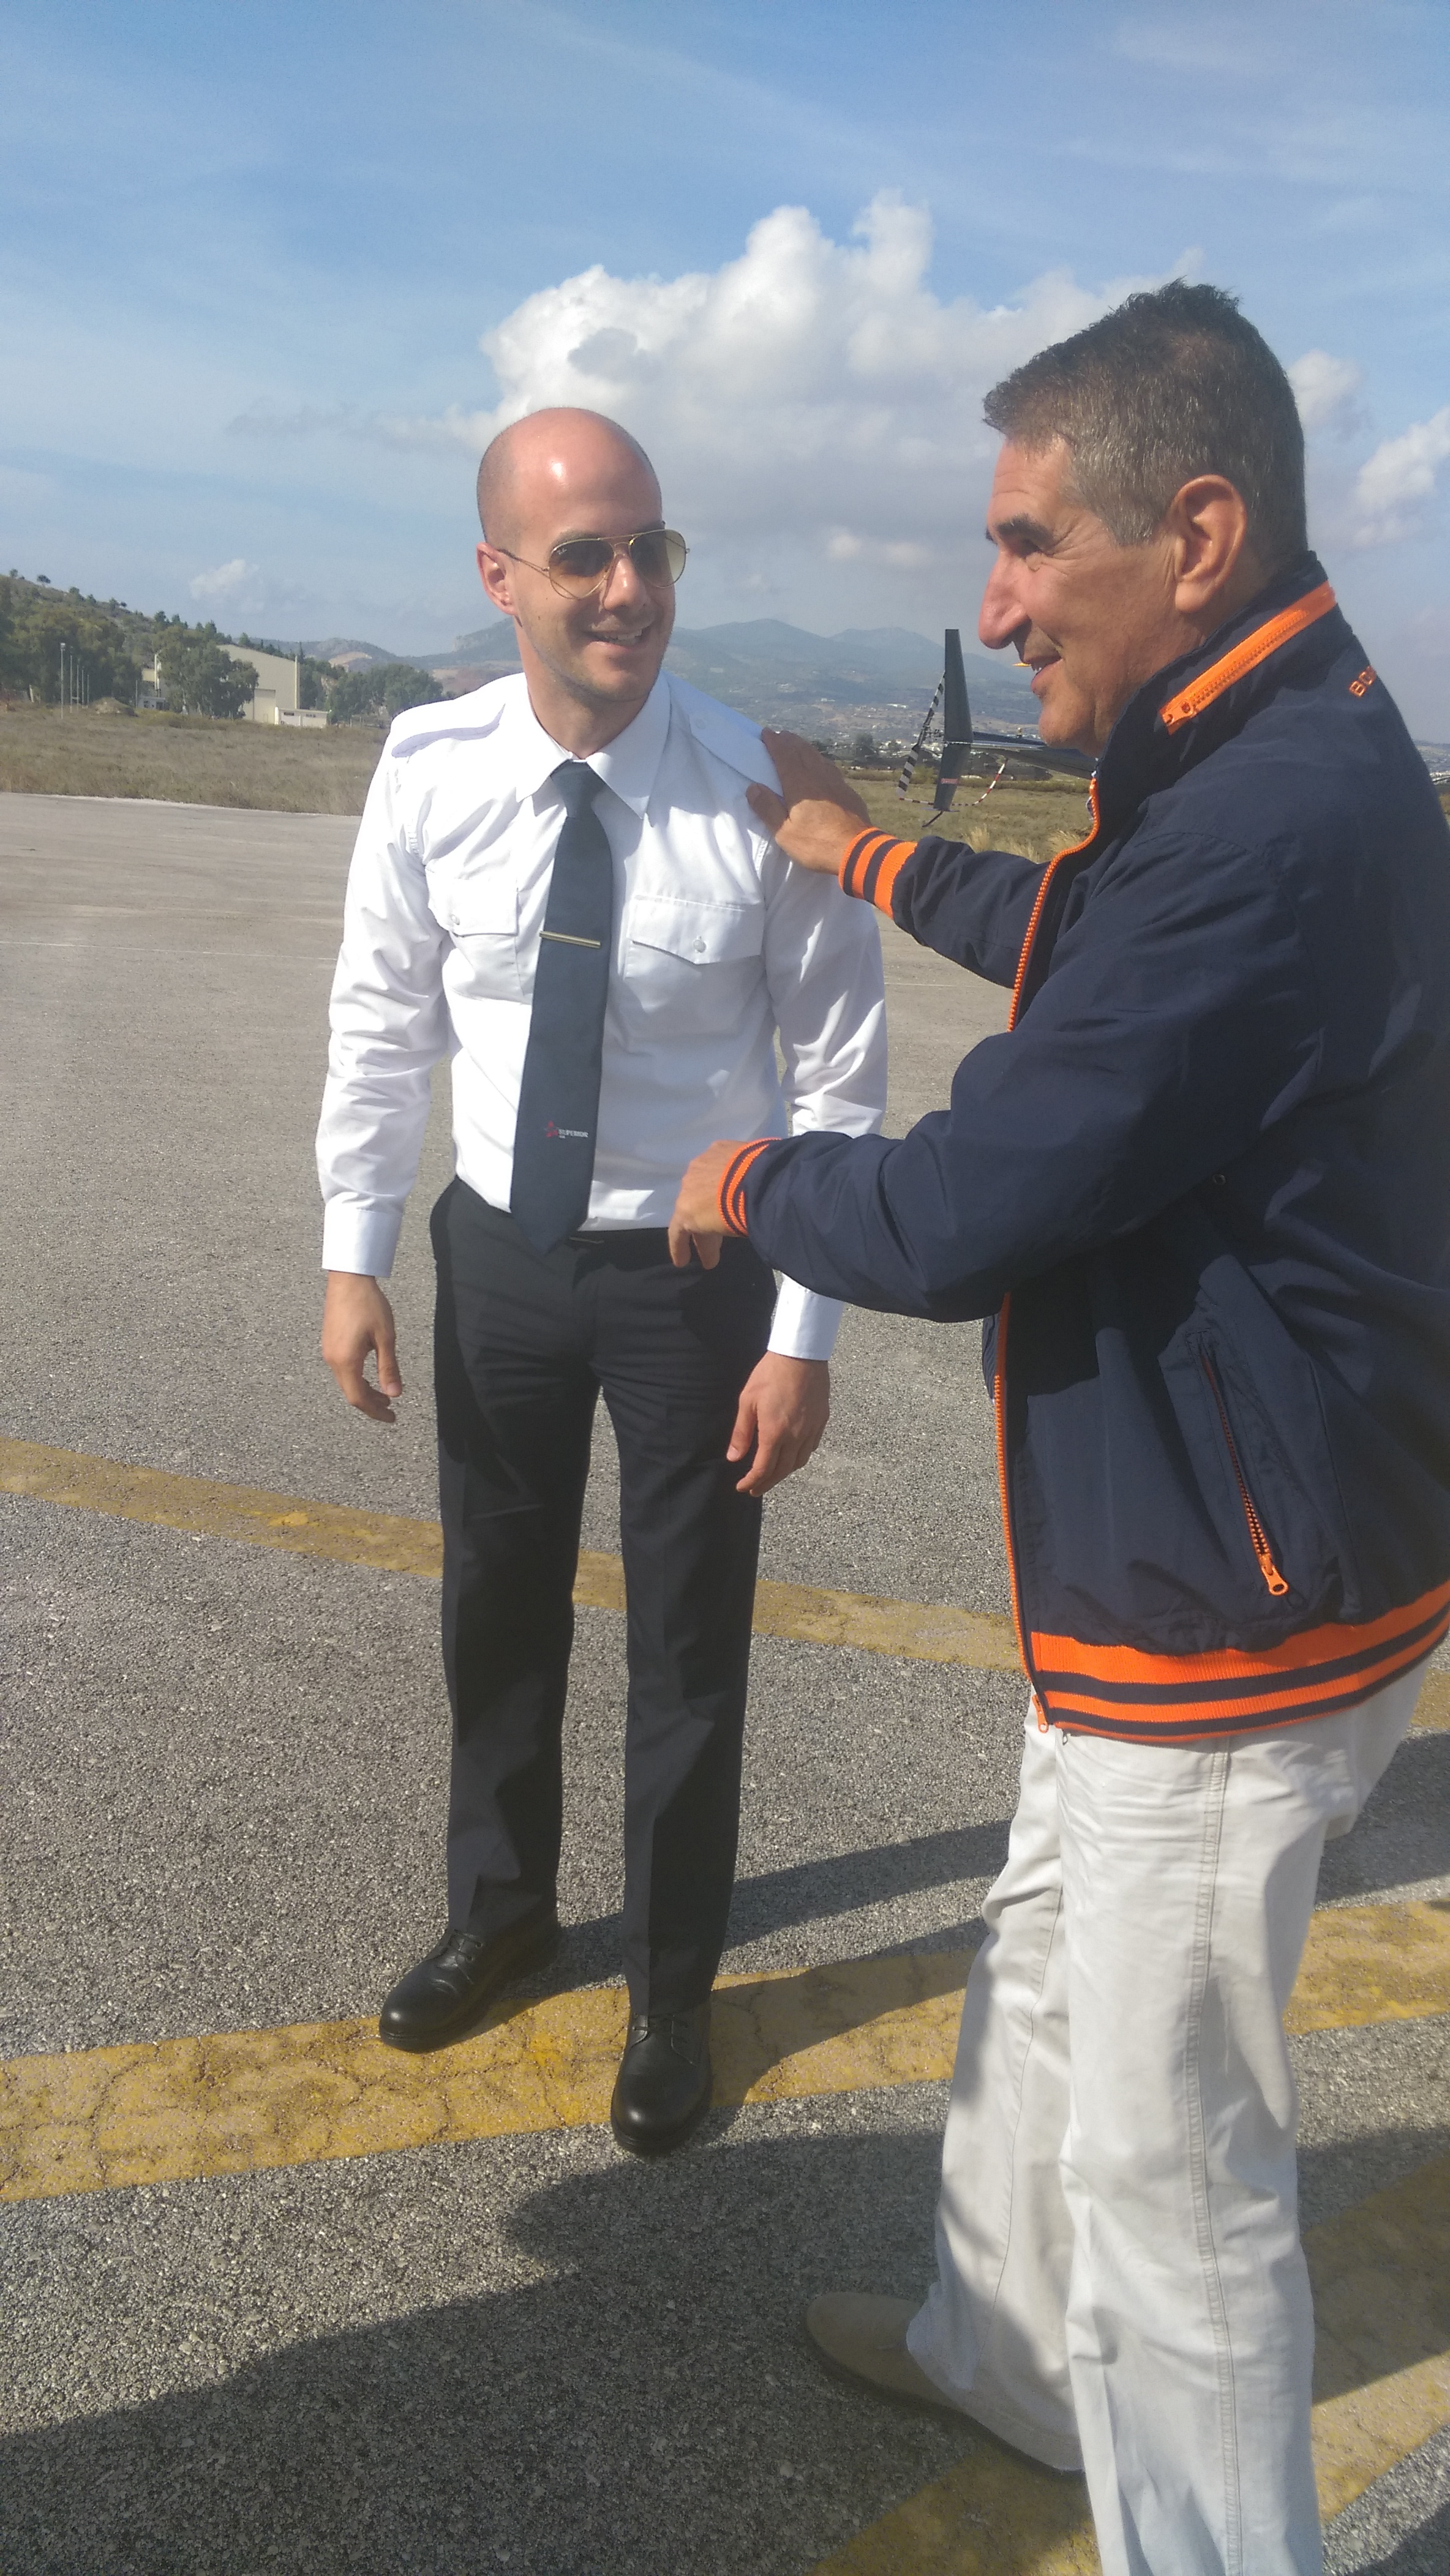 Mr. Georgakis Nikos successfully completed his first solo flight!